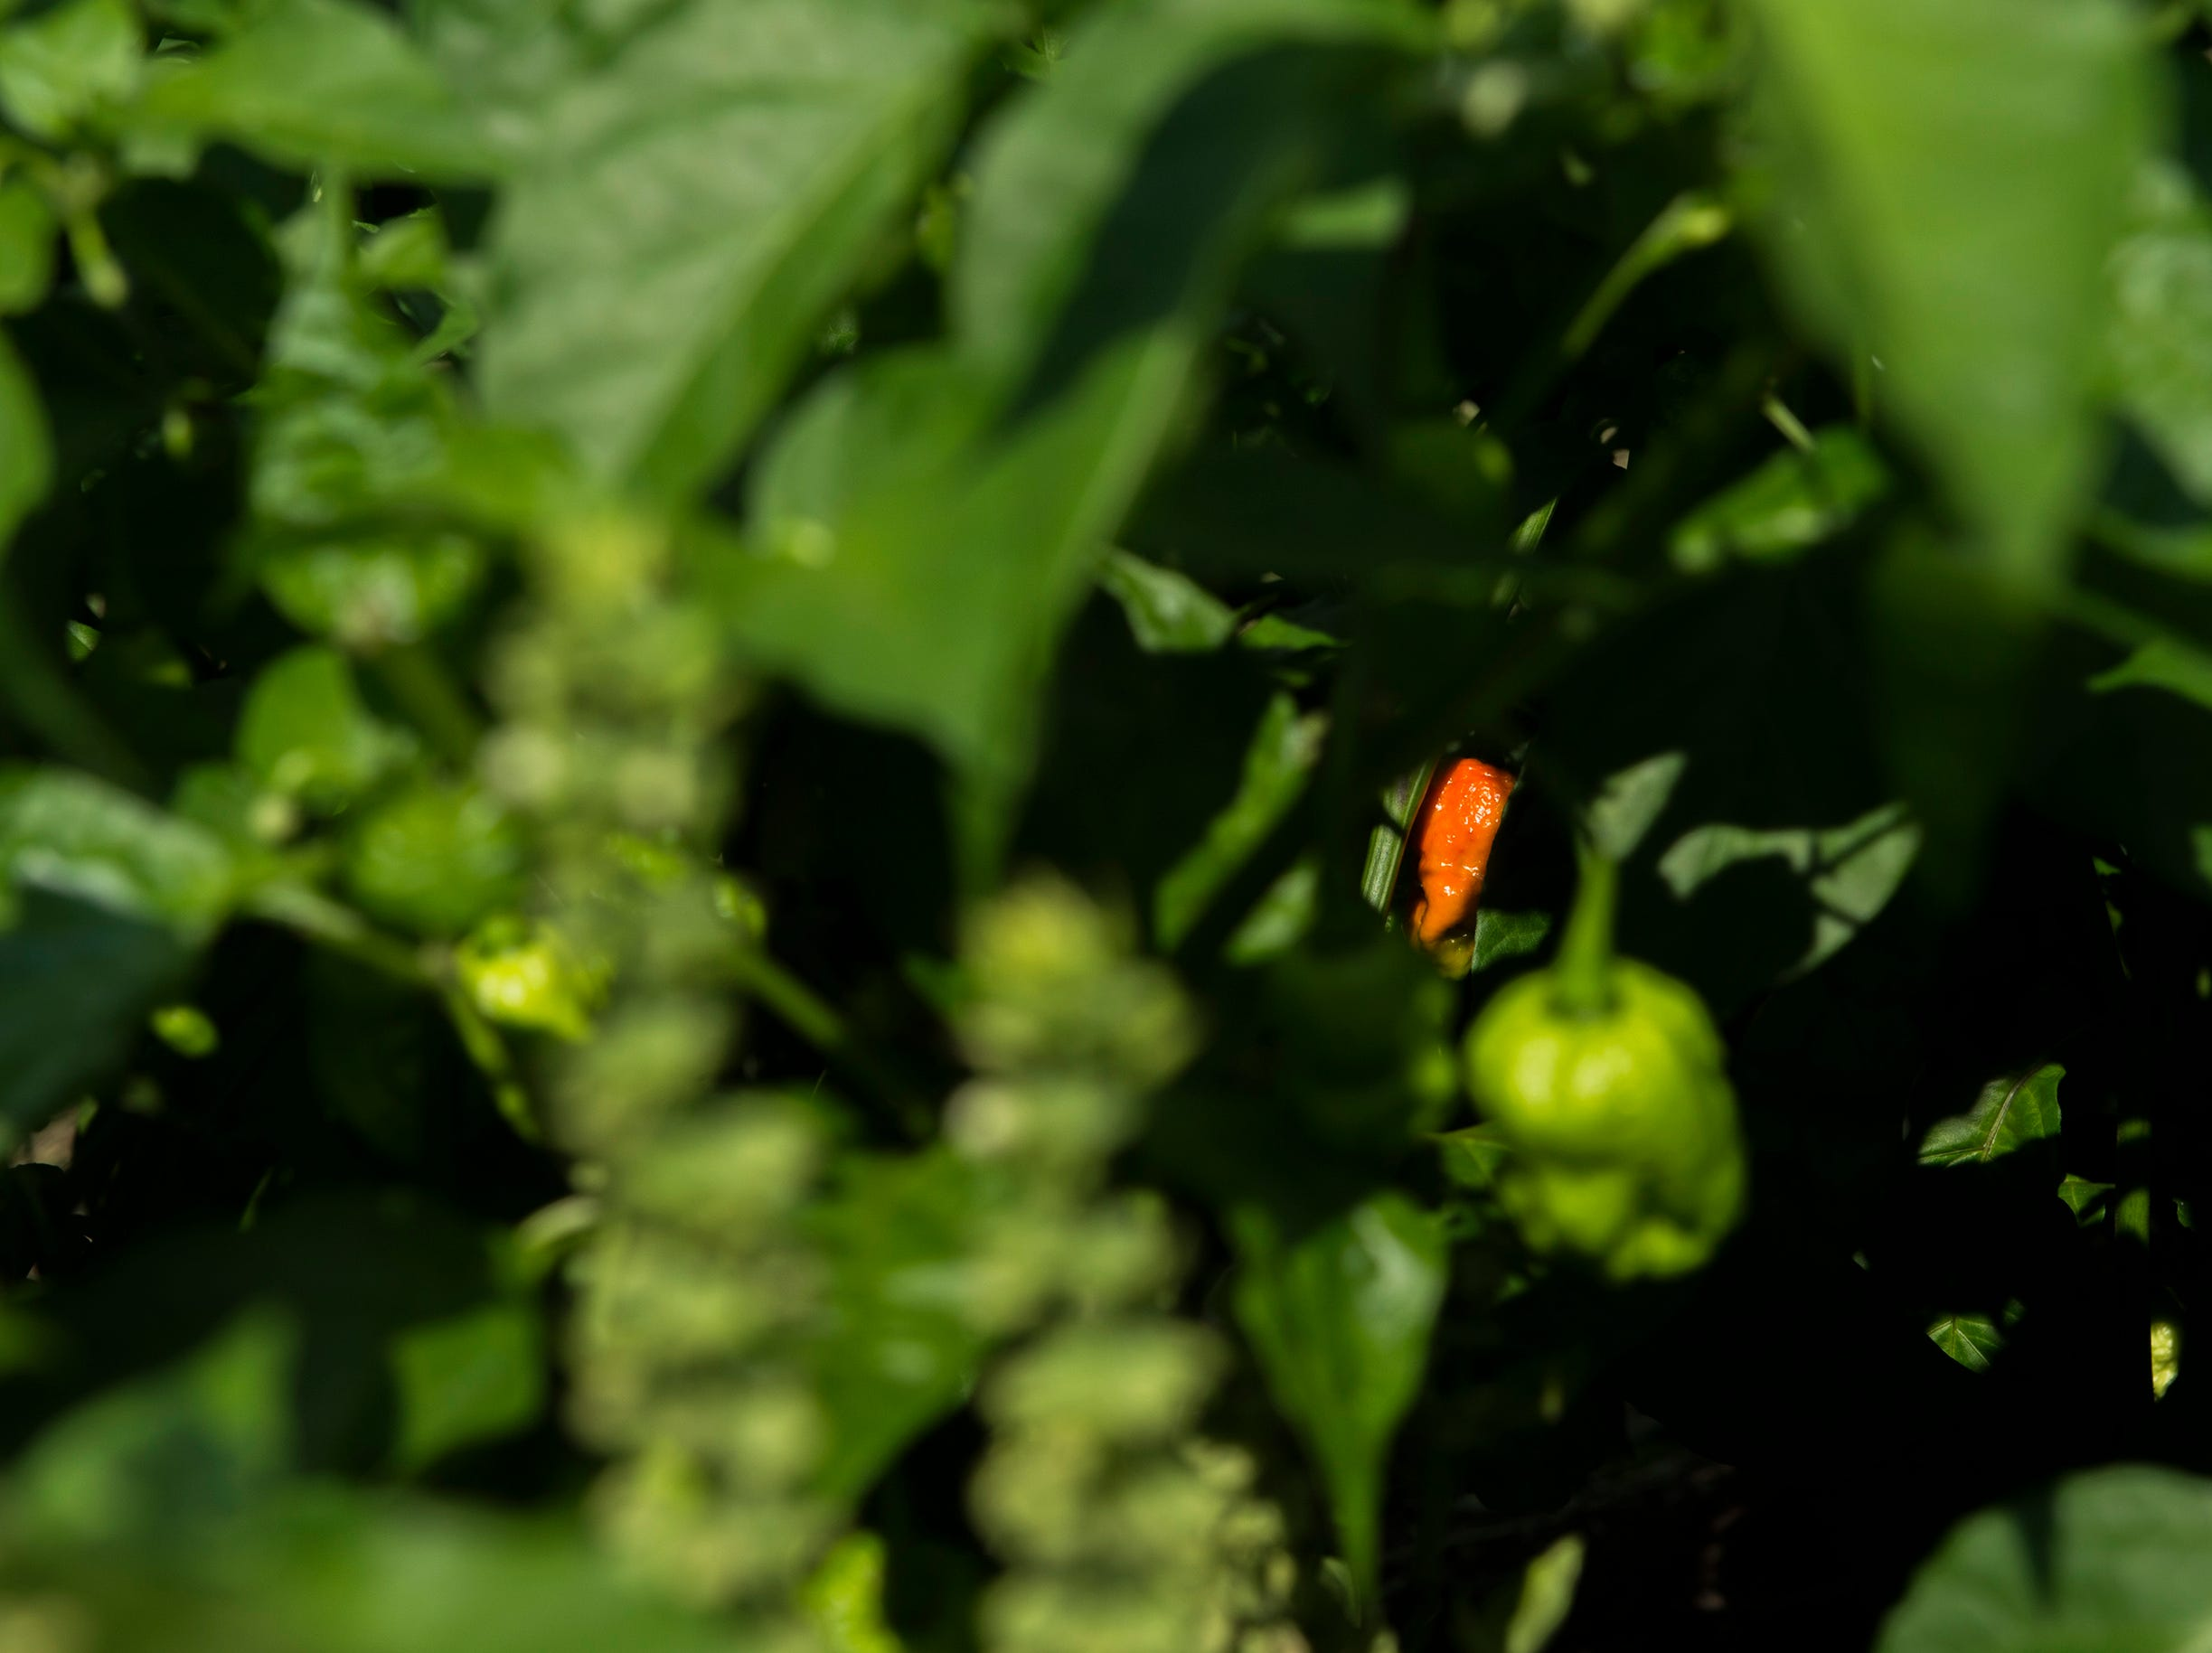 A bright orange habanero pepper grows at Free Haven Farms Thursday, Aug. 23, 2018 in Lawnside, N.J.